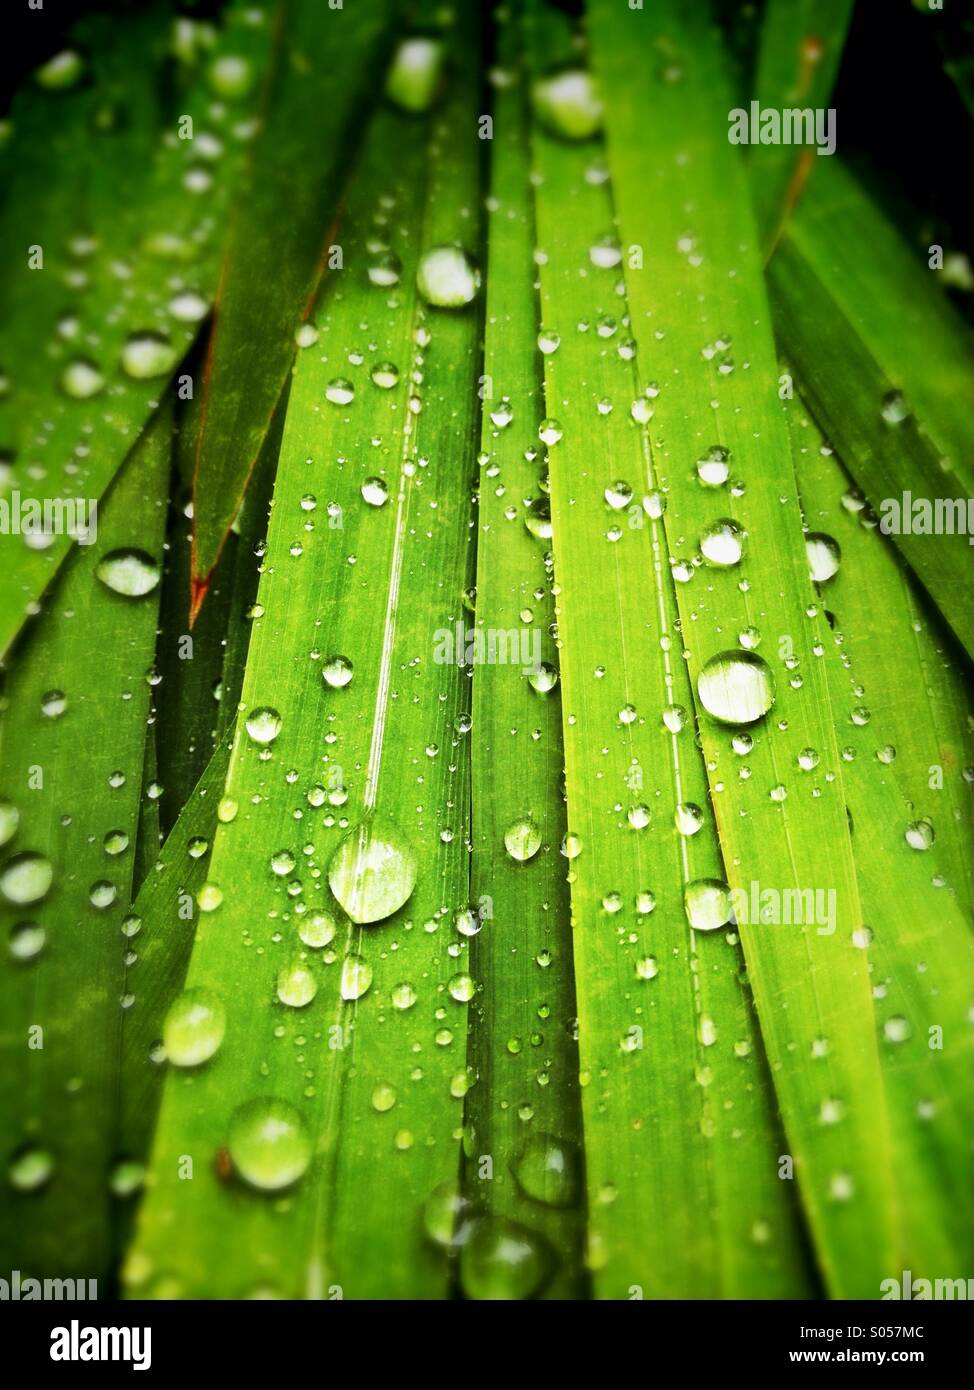 Water droplets on leaves - Stock Image